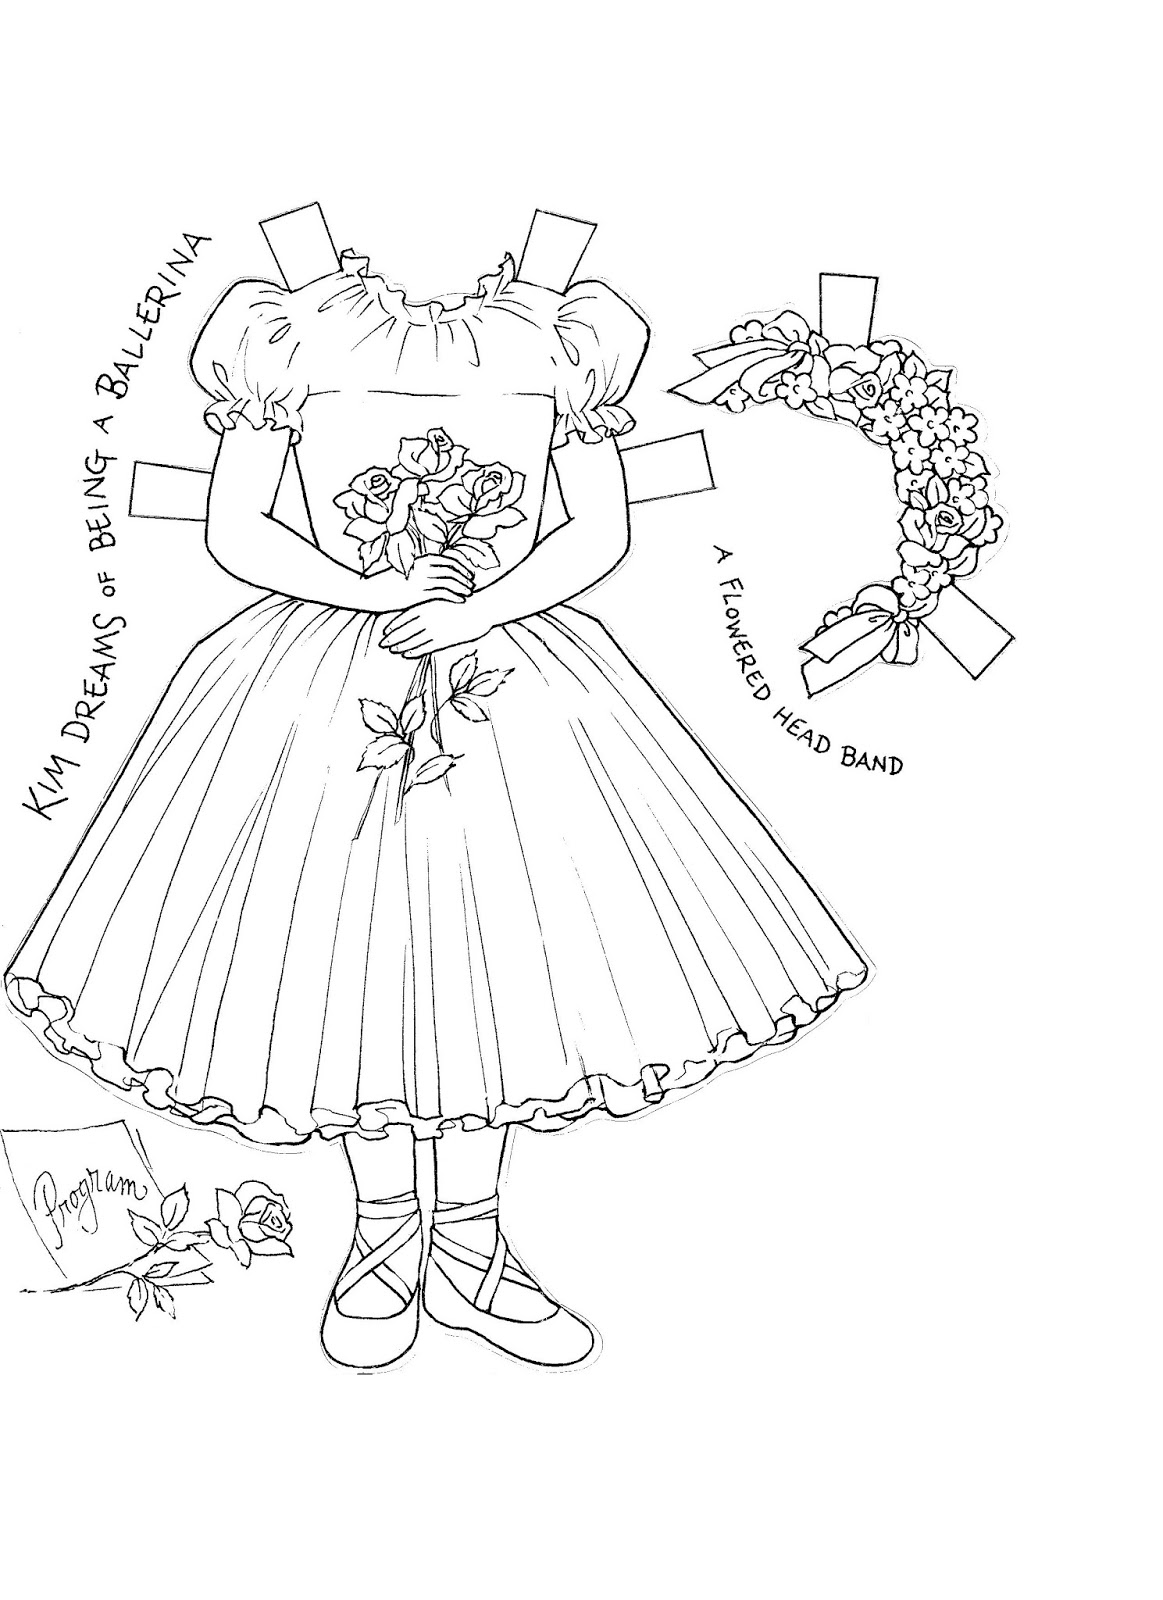 Mostly Paper Dolls Too!: Kim's Paper Doll Coloring Book.